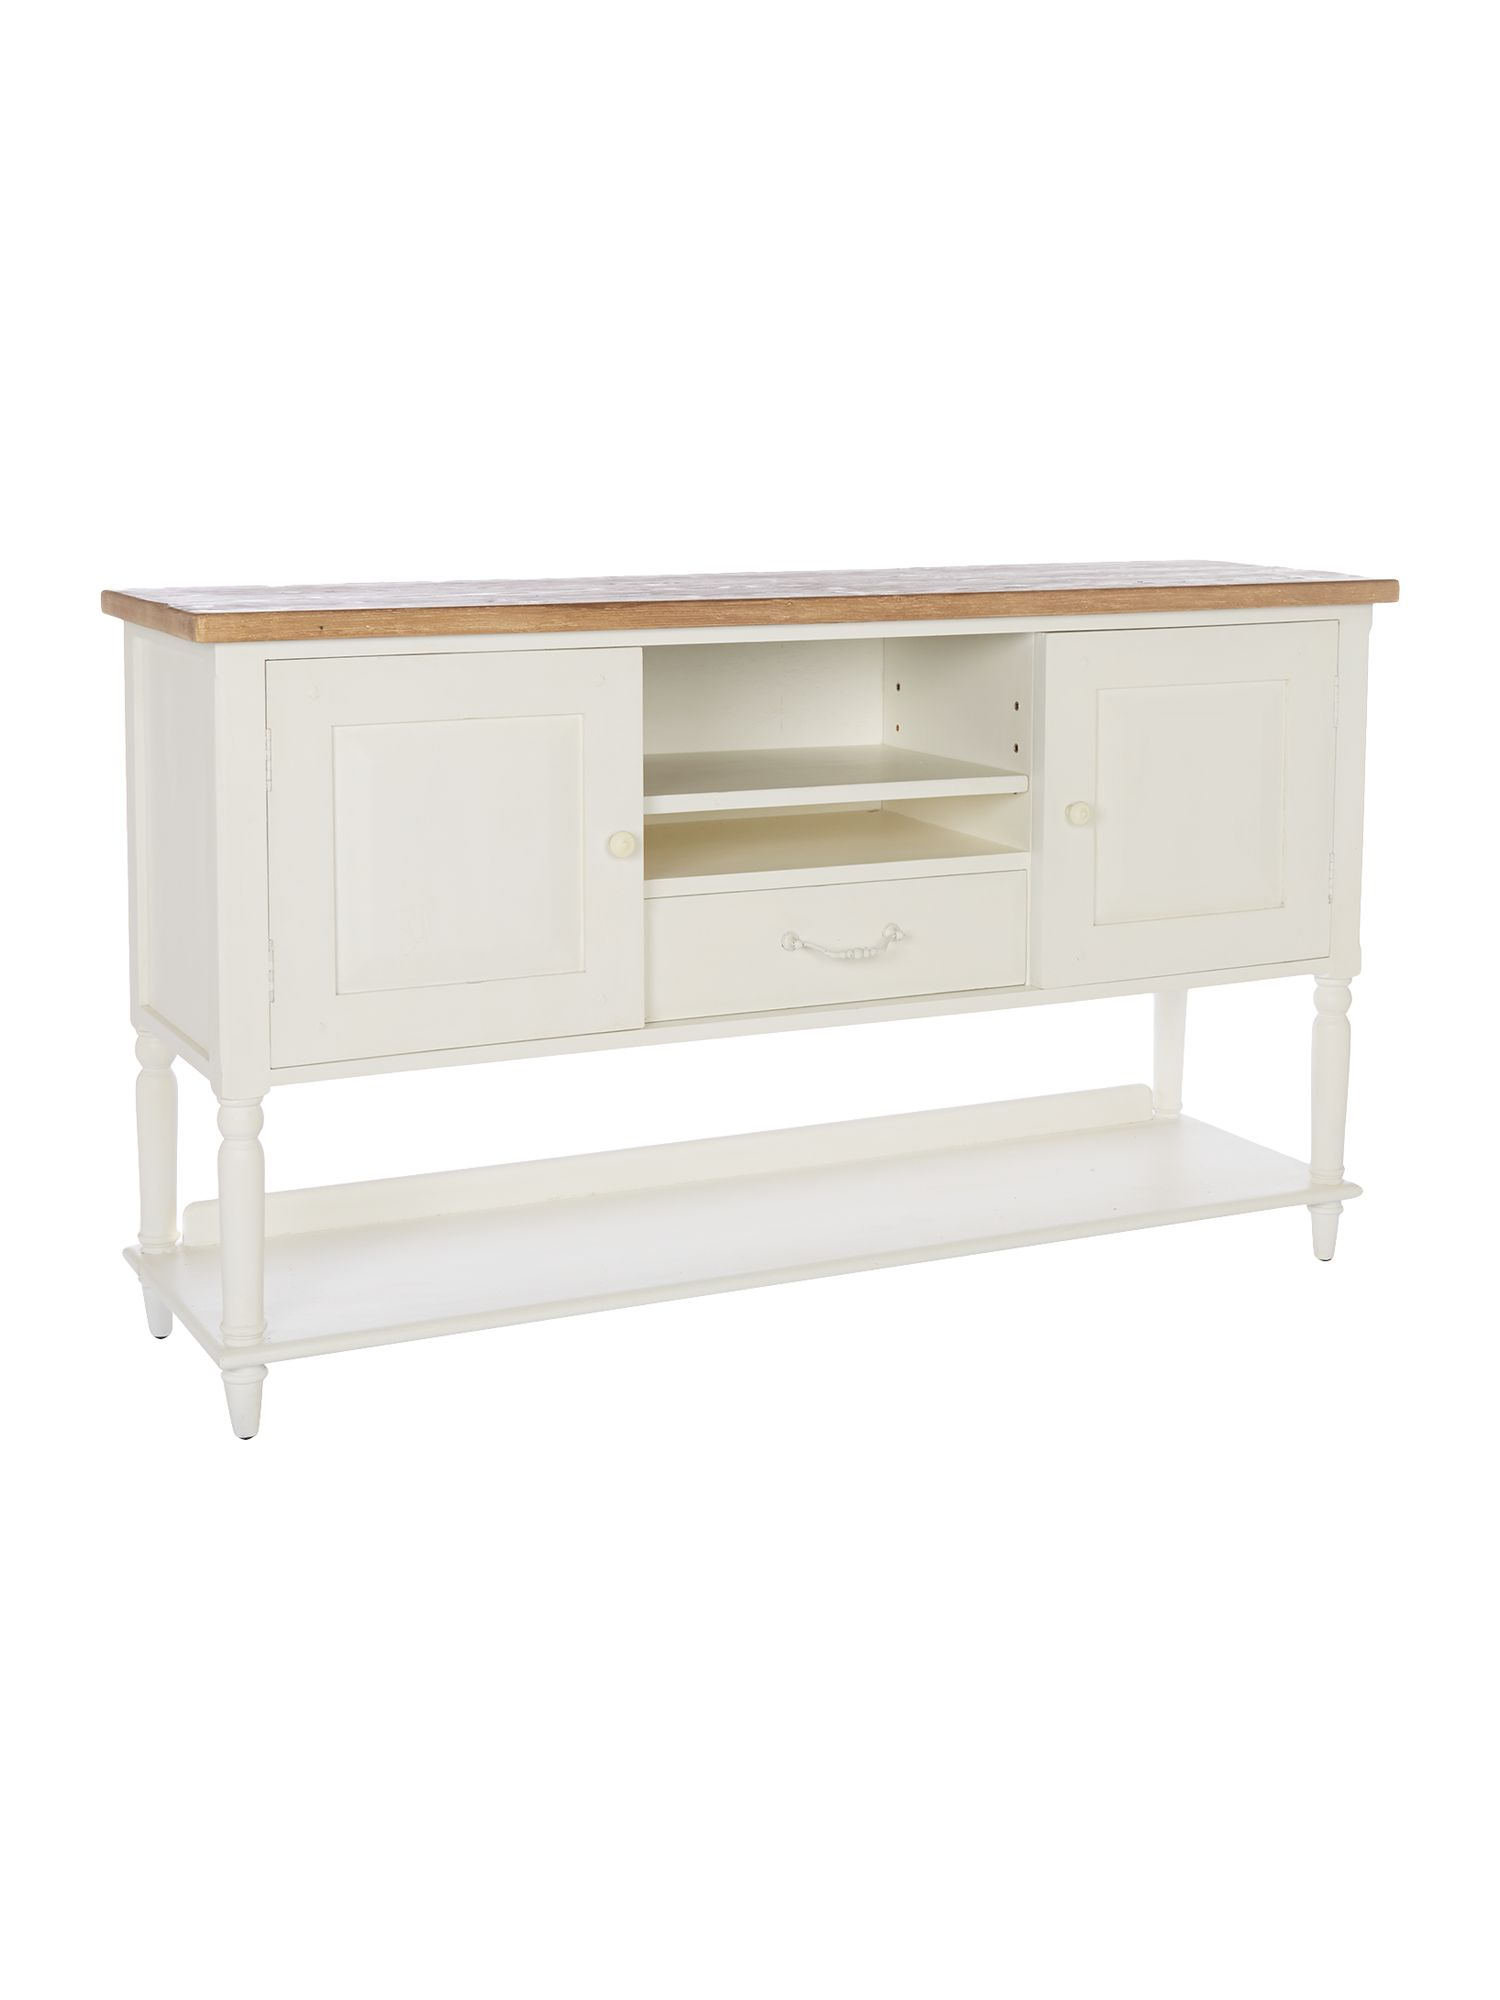 Cambridge natural & white sideboard